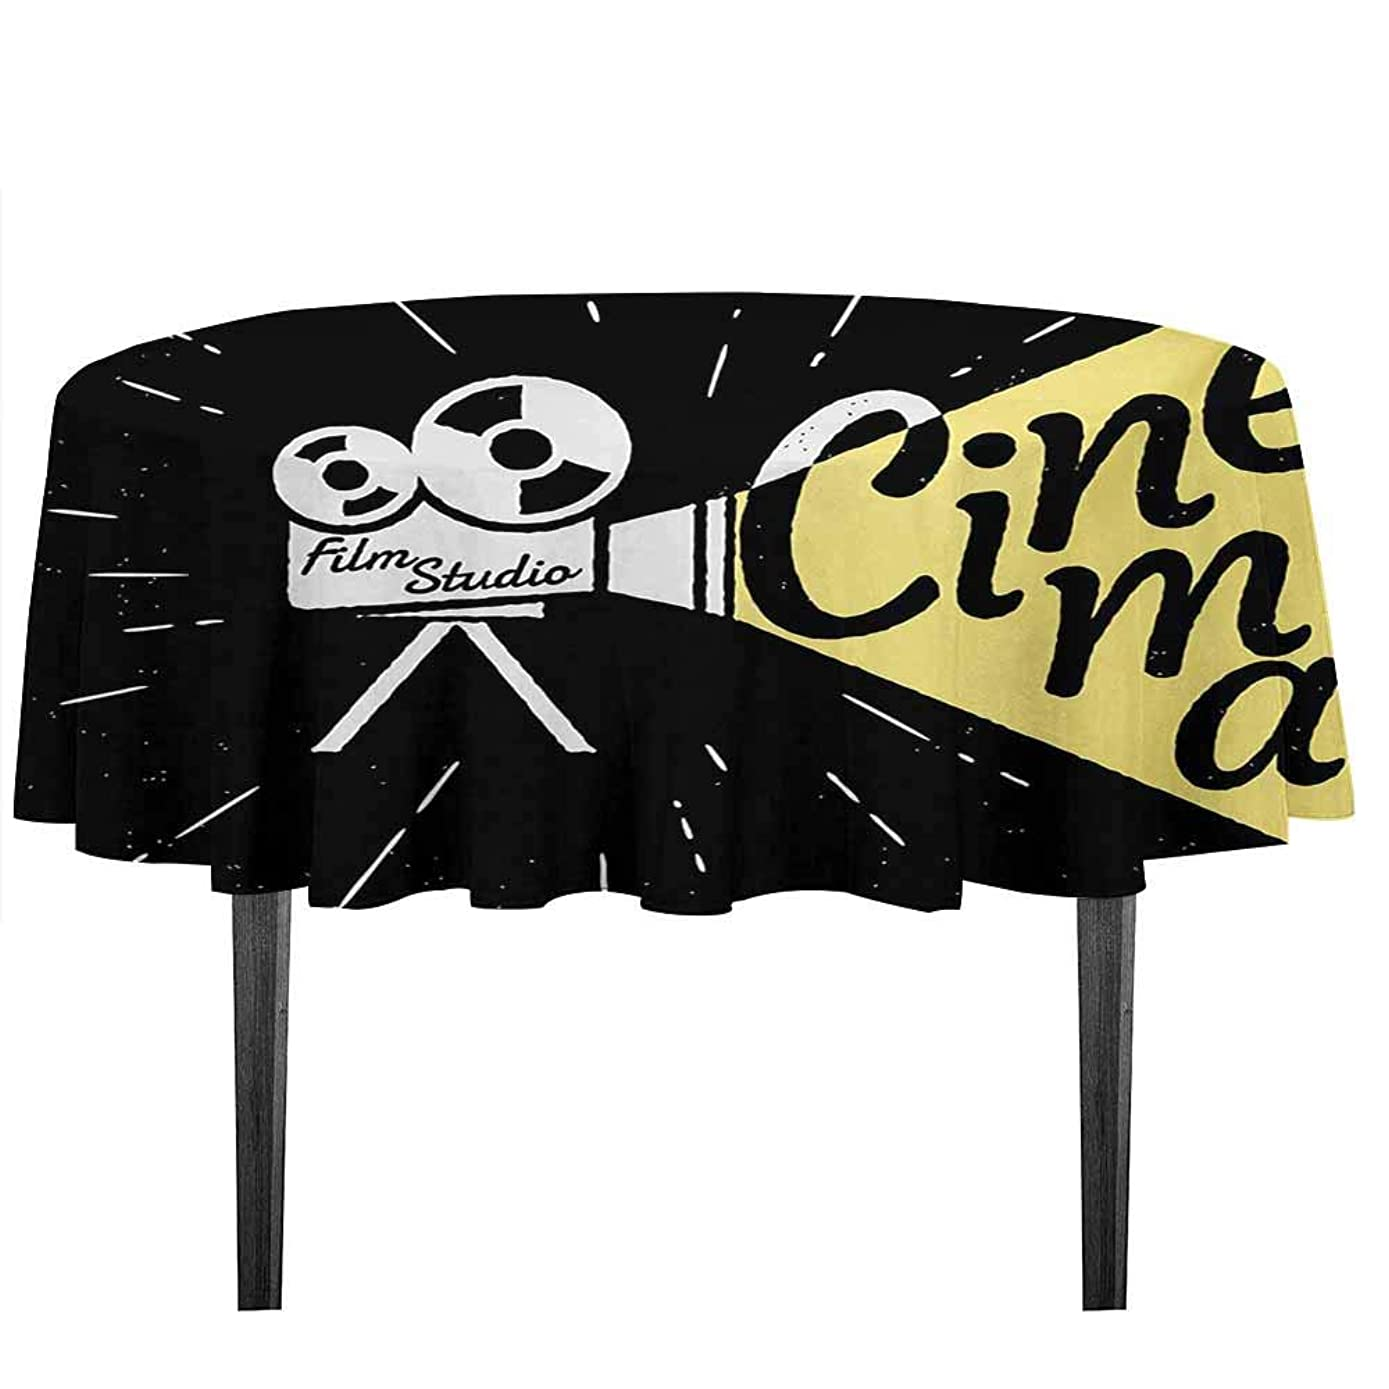 kangkaishi Movie Theater Detachable Washable Tablecloth Movie Projector Sketch with Grunge Cinema Lettering on Black Backdrop Great for Parties Festivals etc. D35.4 Inch Yellow Black White